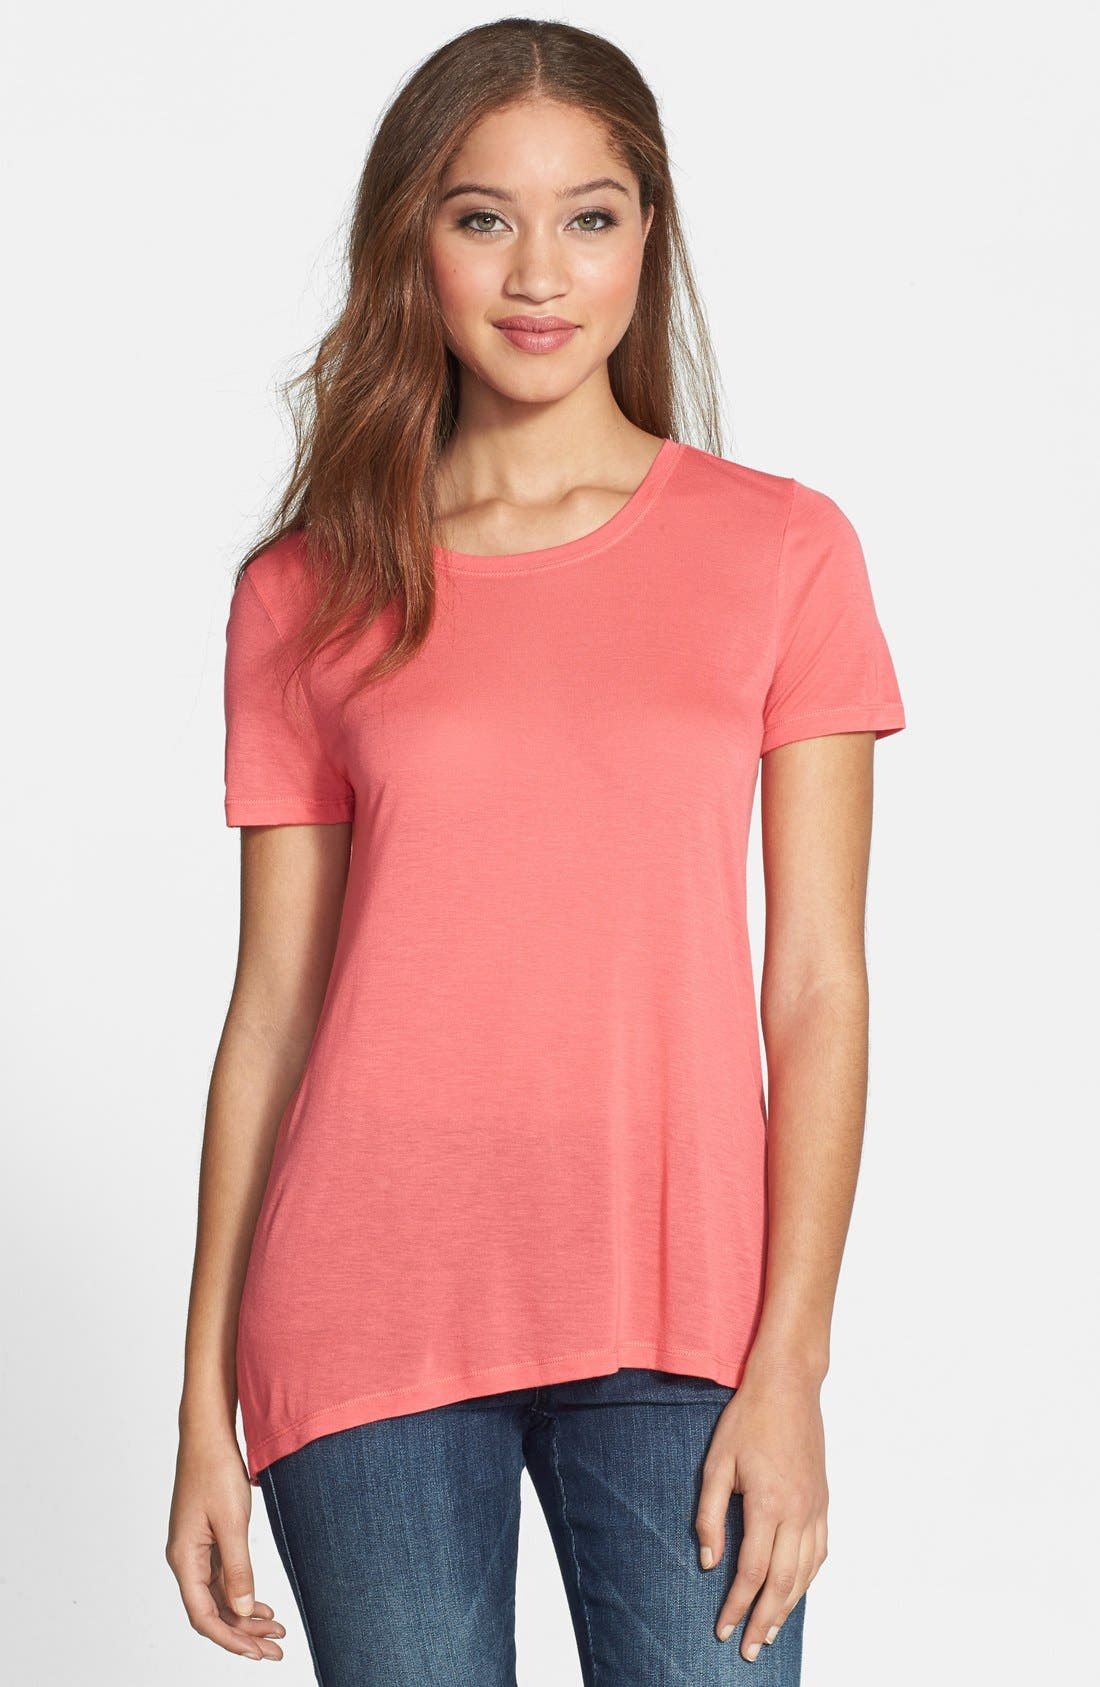 Alternate Image 1 Selected - Halogen® Lightweight High/Low Seamed Back Tee (Regular & Petite)